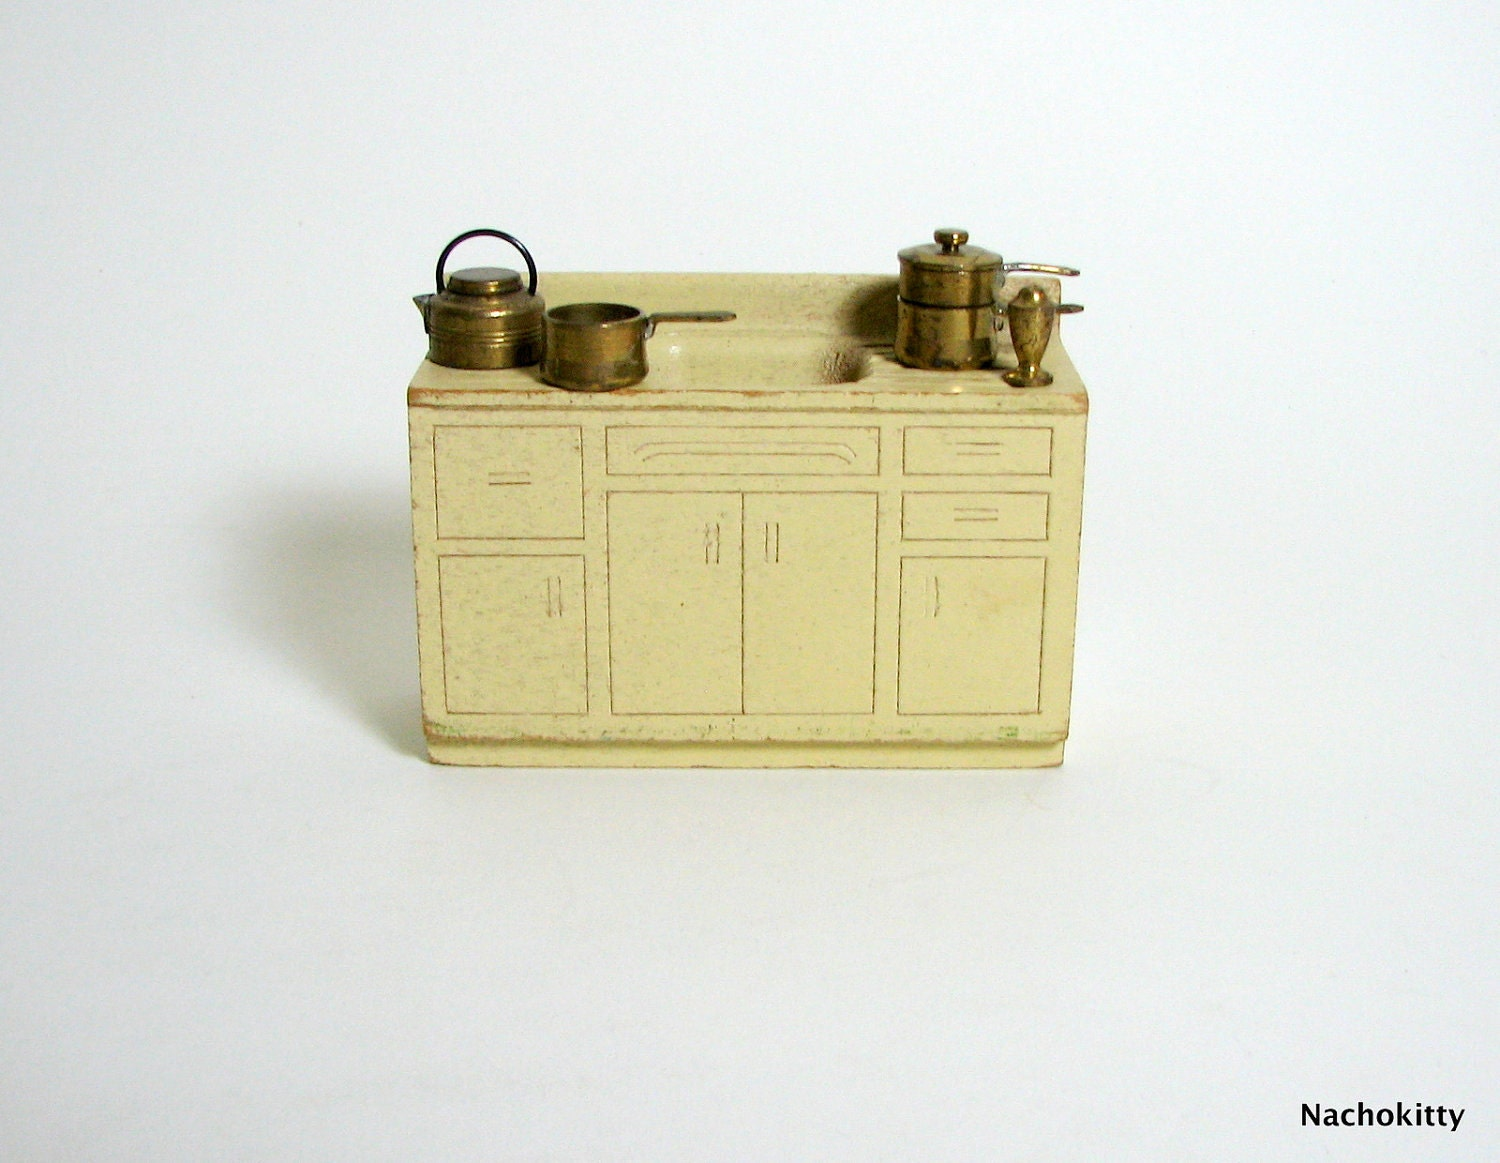 1930s Dollhouse Kitchen Sink And Accessories Vintage By